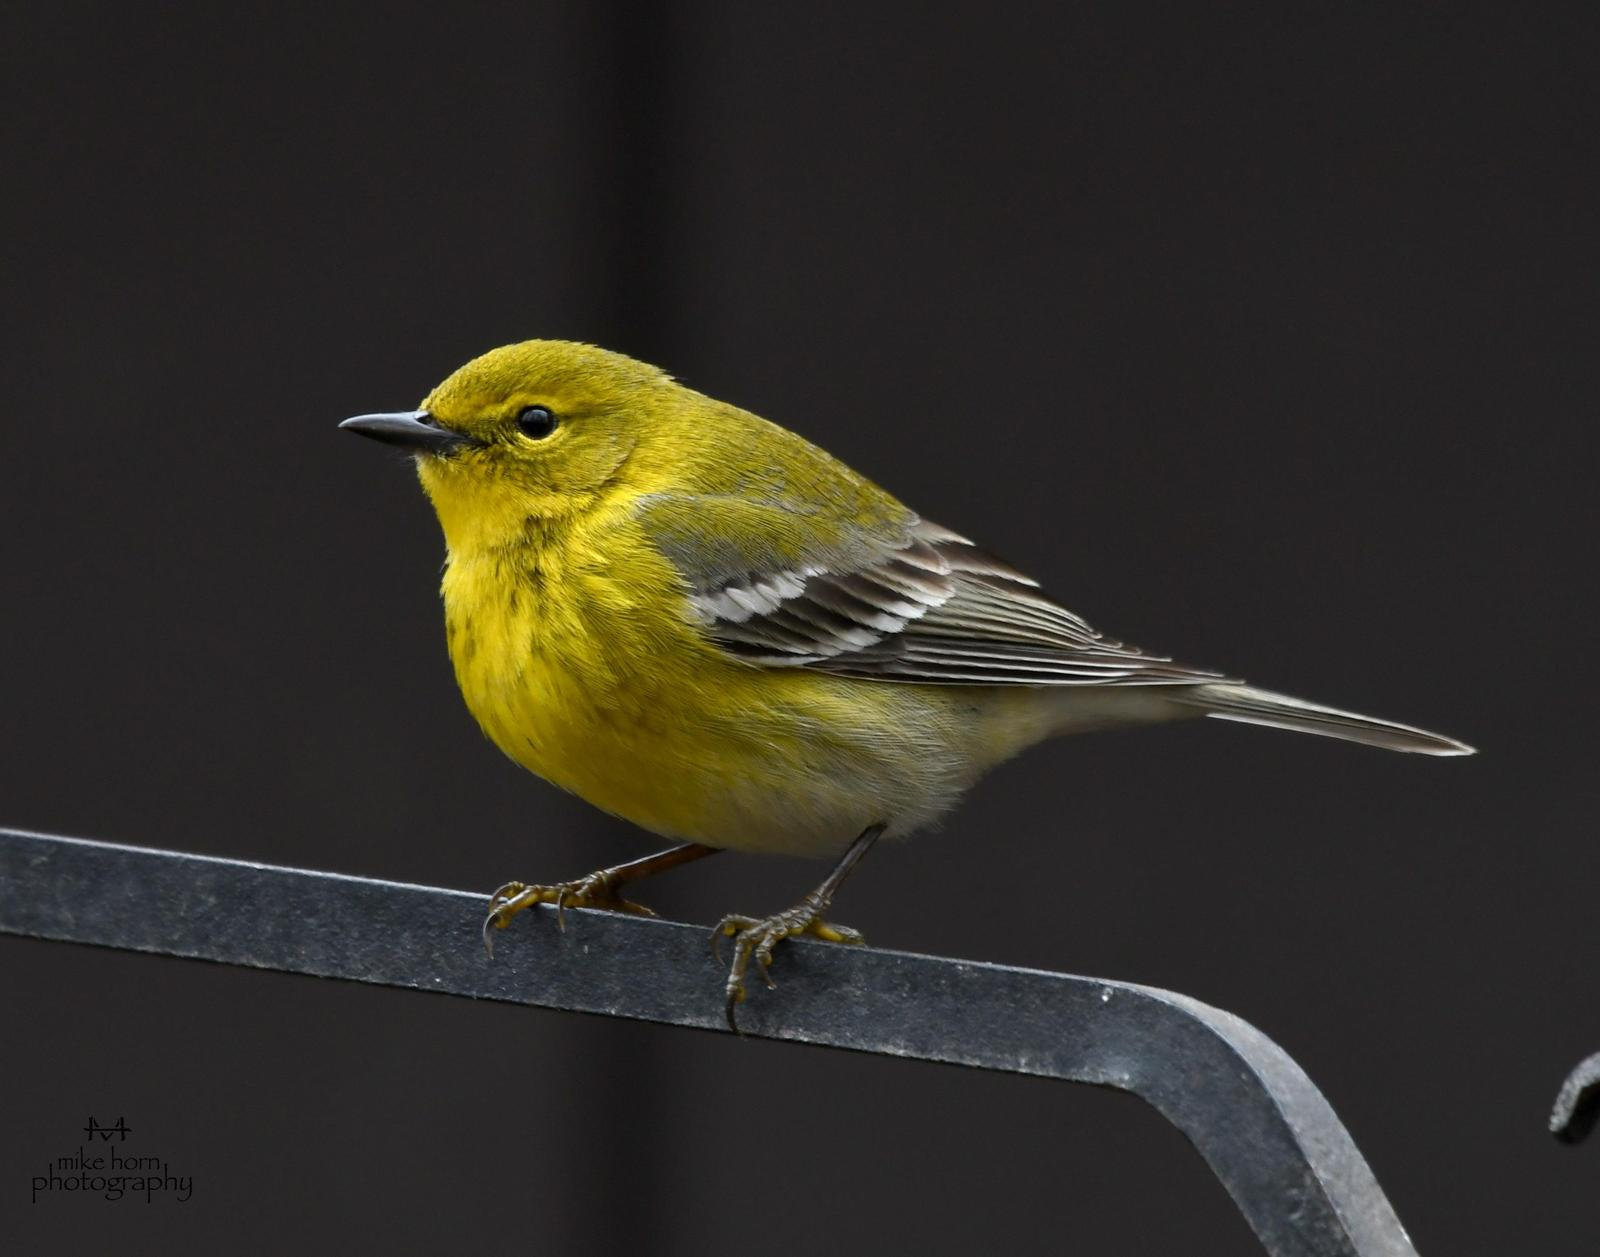 Pine Warbler Photo by Michael Horn